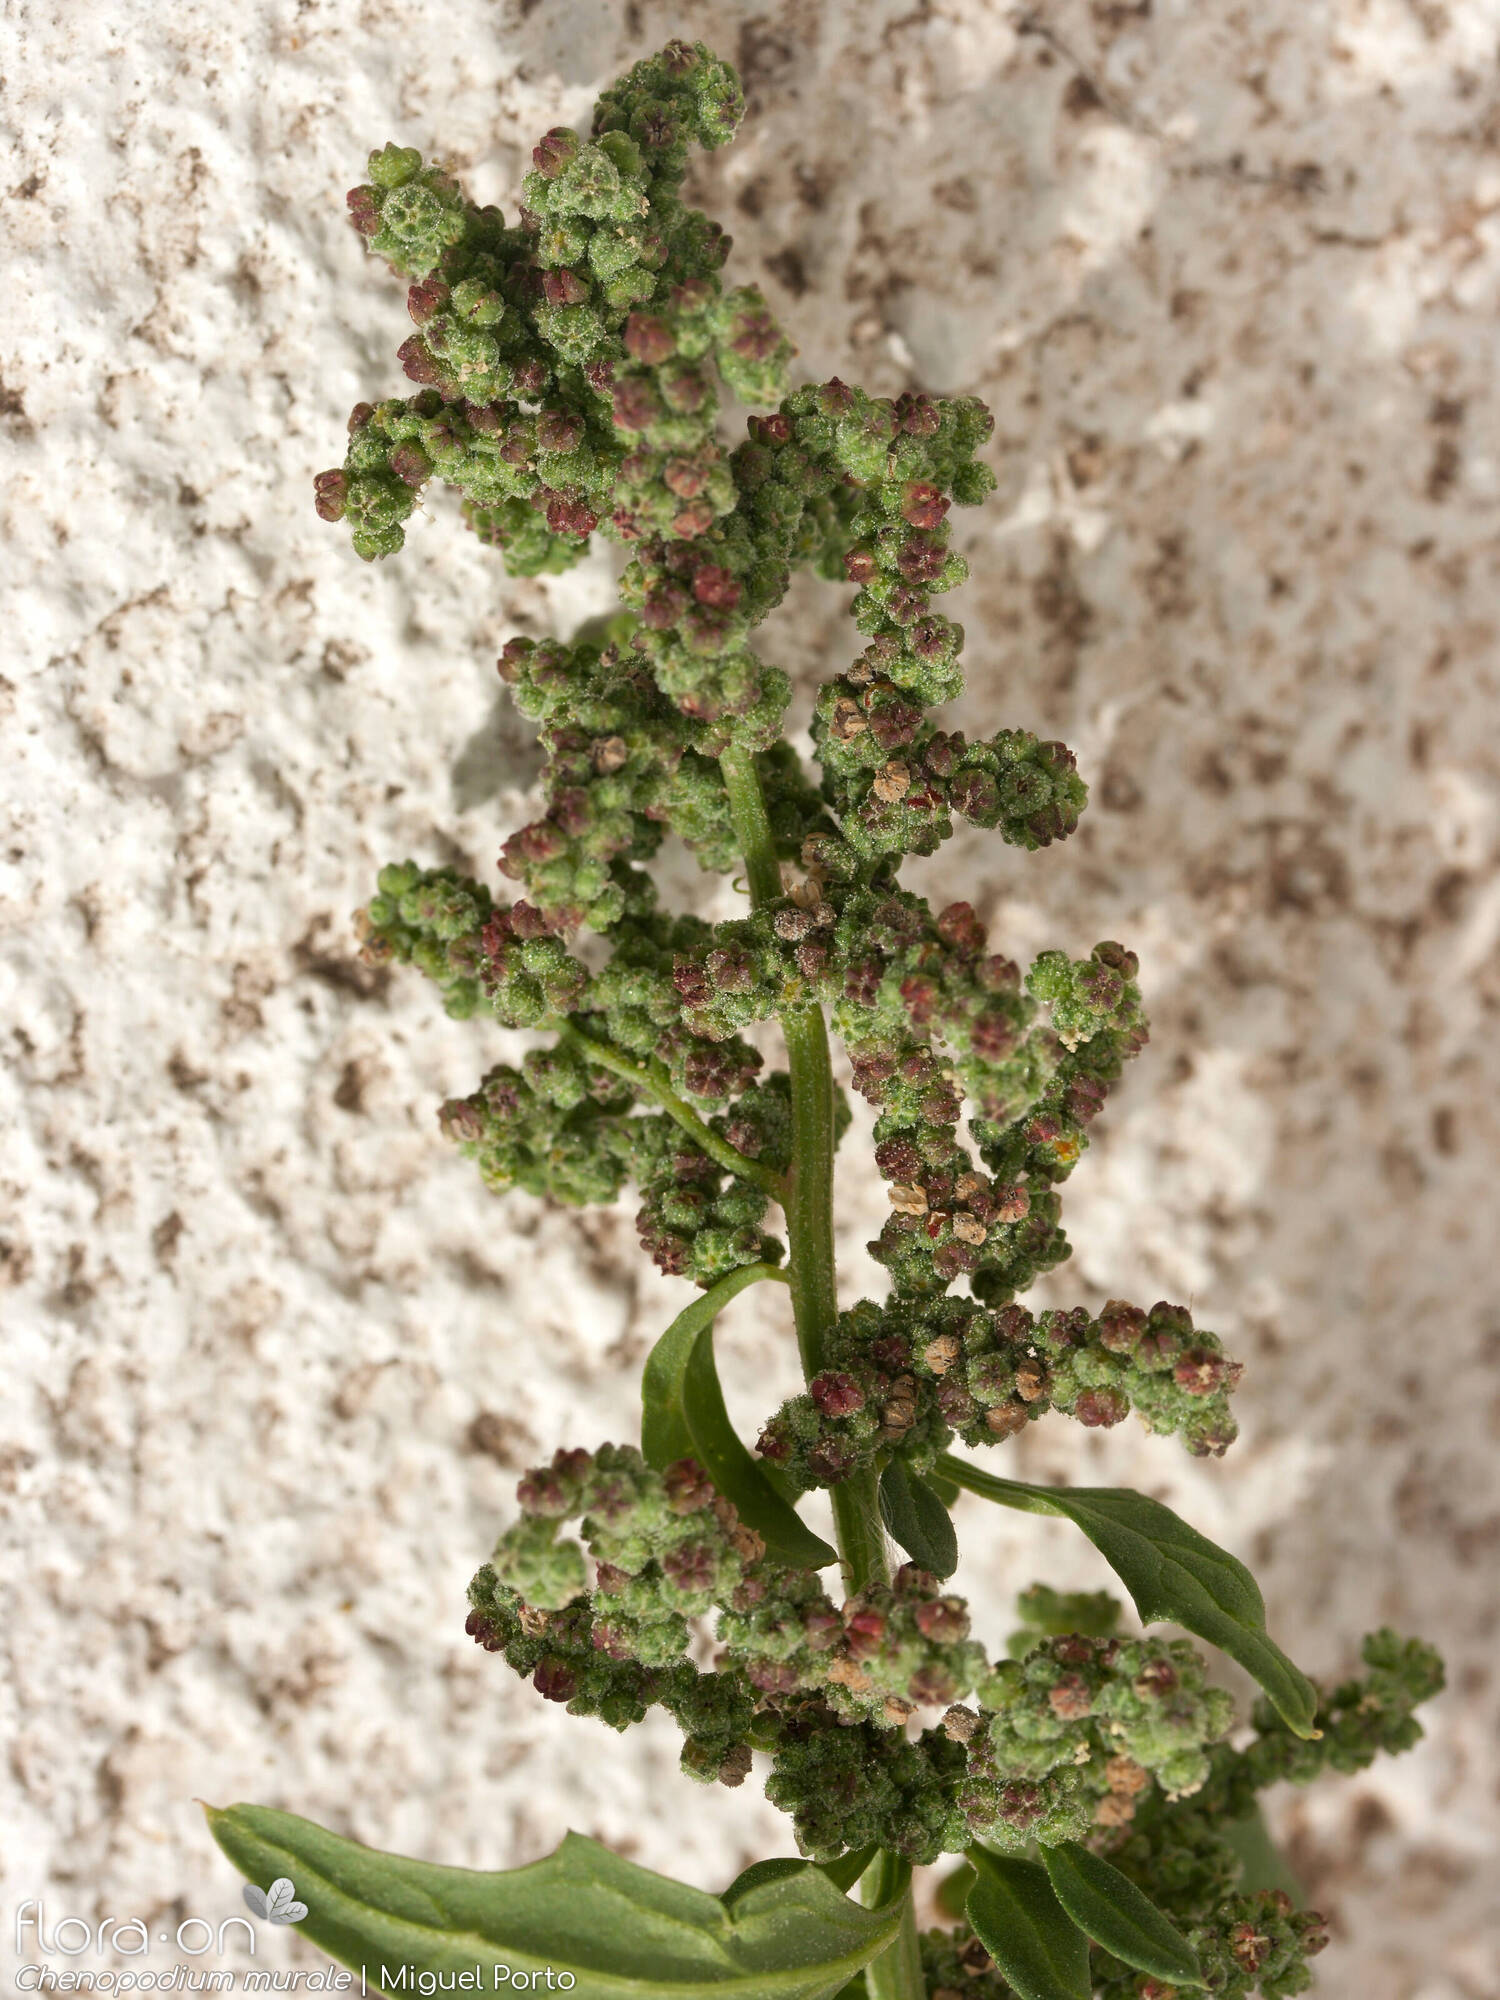 Chenopodium murale - Flor (geral) | Miguel Porto; CC BY-NC 4.0